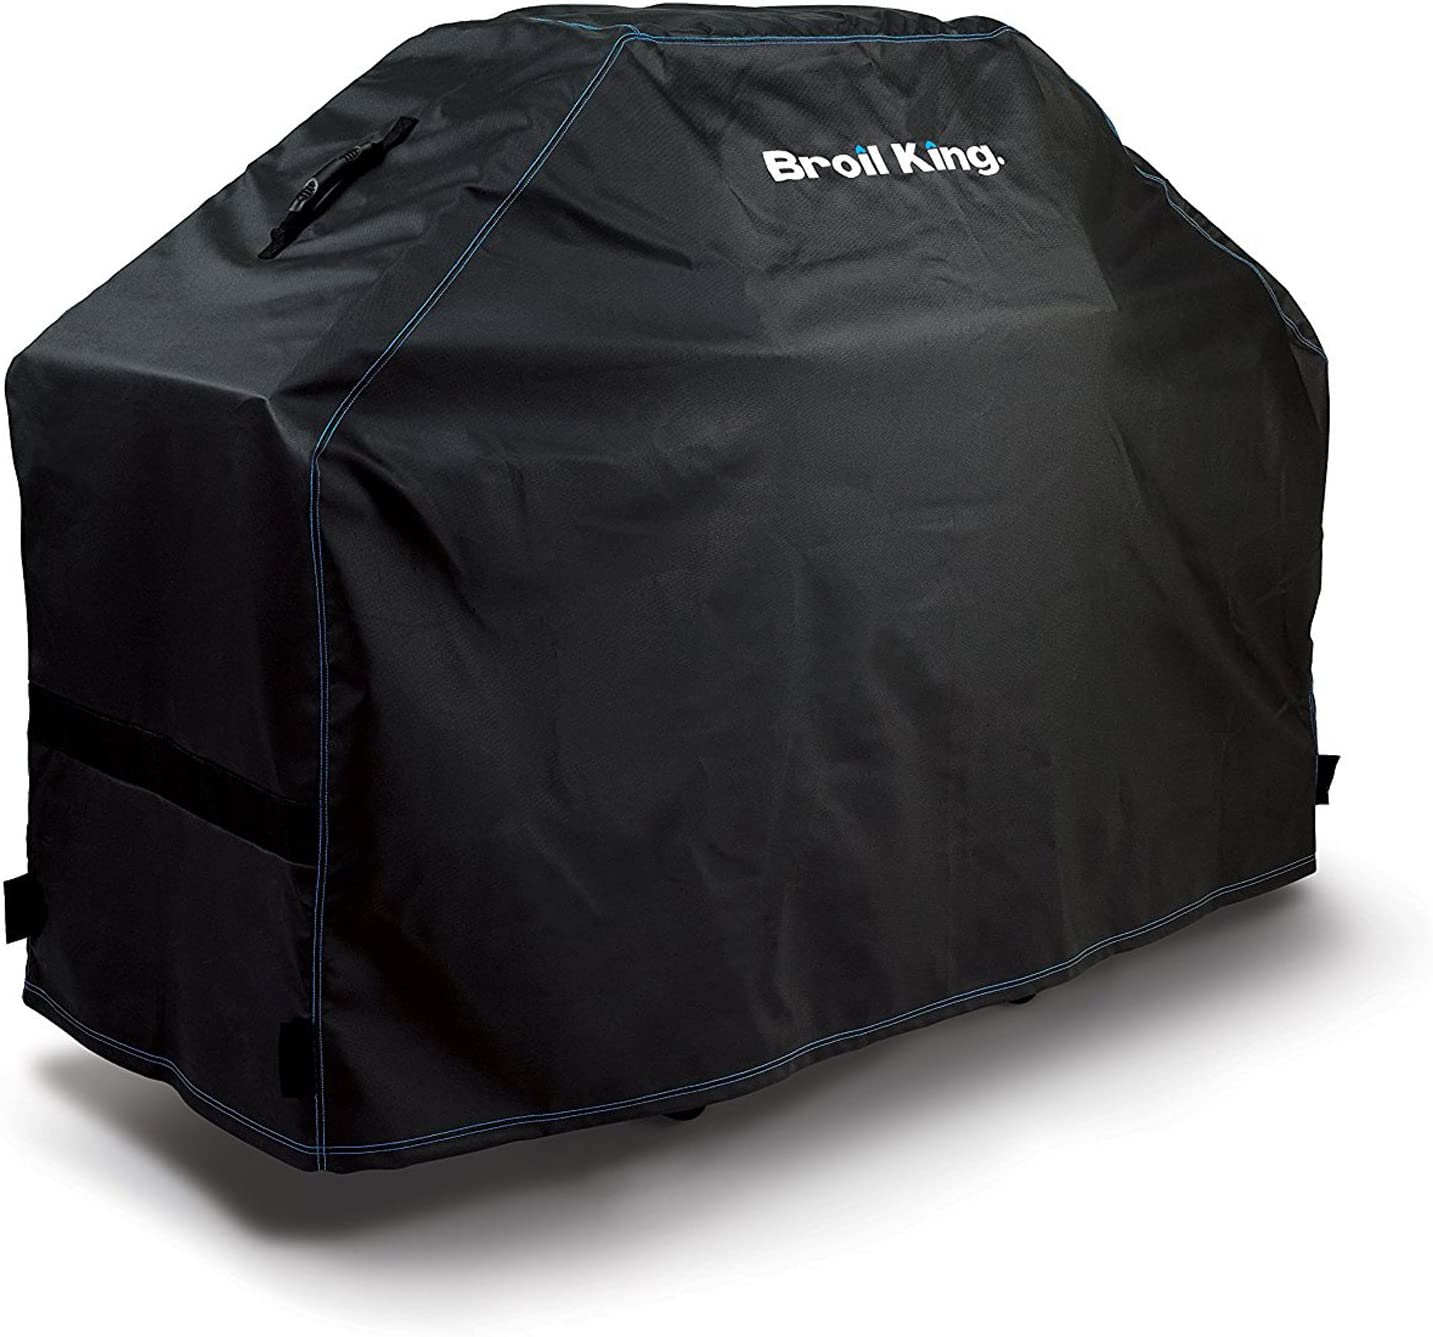 "Broil King 76"" Premium Exact Fit Cover for Regal XL, Imperial XL BBQ Grills"